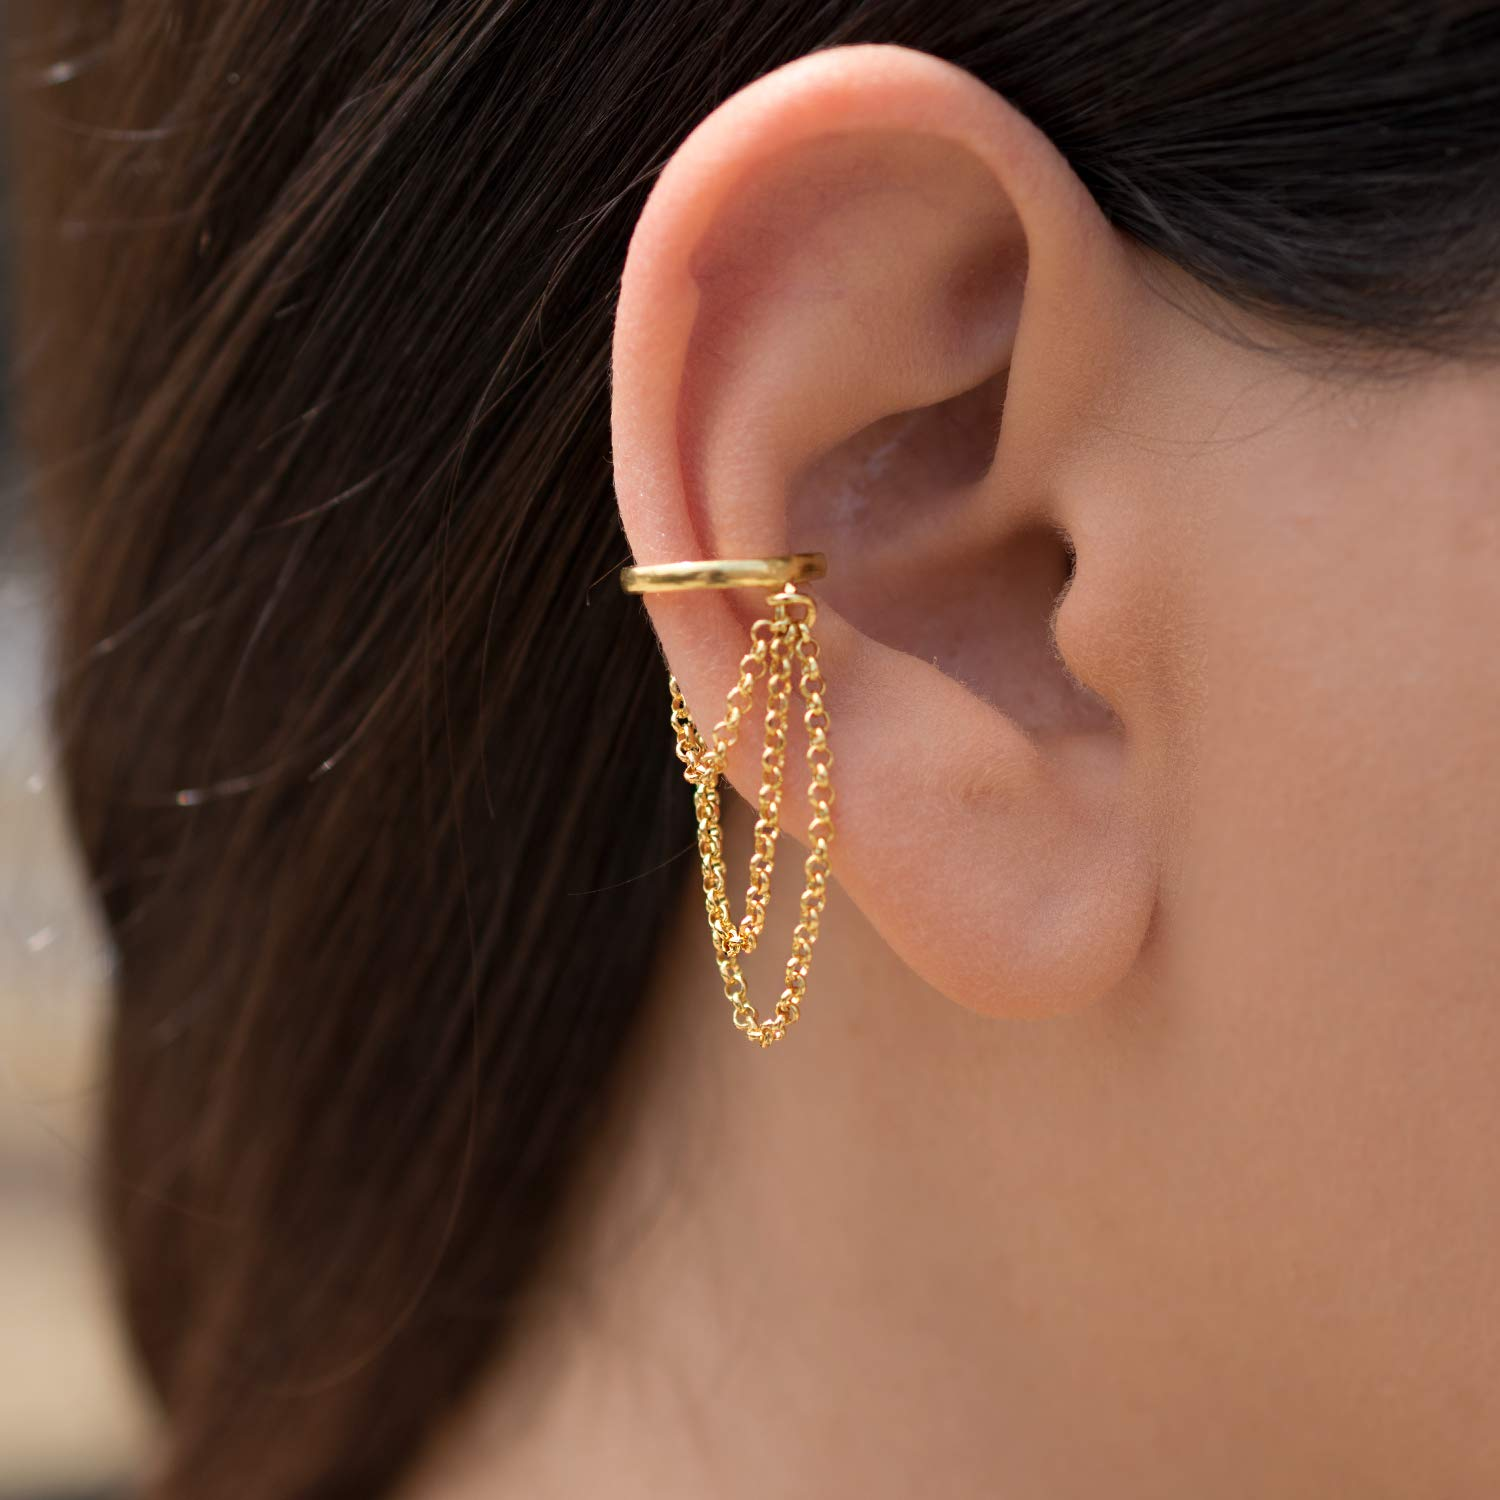 dd49ddd0869 Ear cuff earring ear cuff no piercing, ear wrap gold ear cuff huggie ...